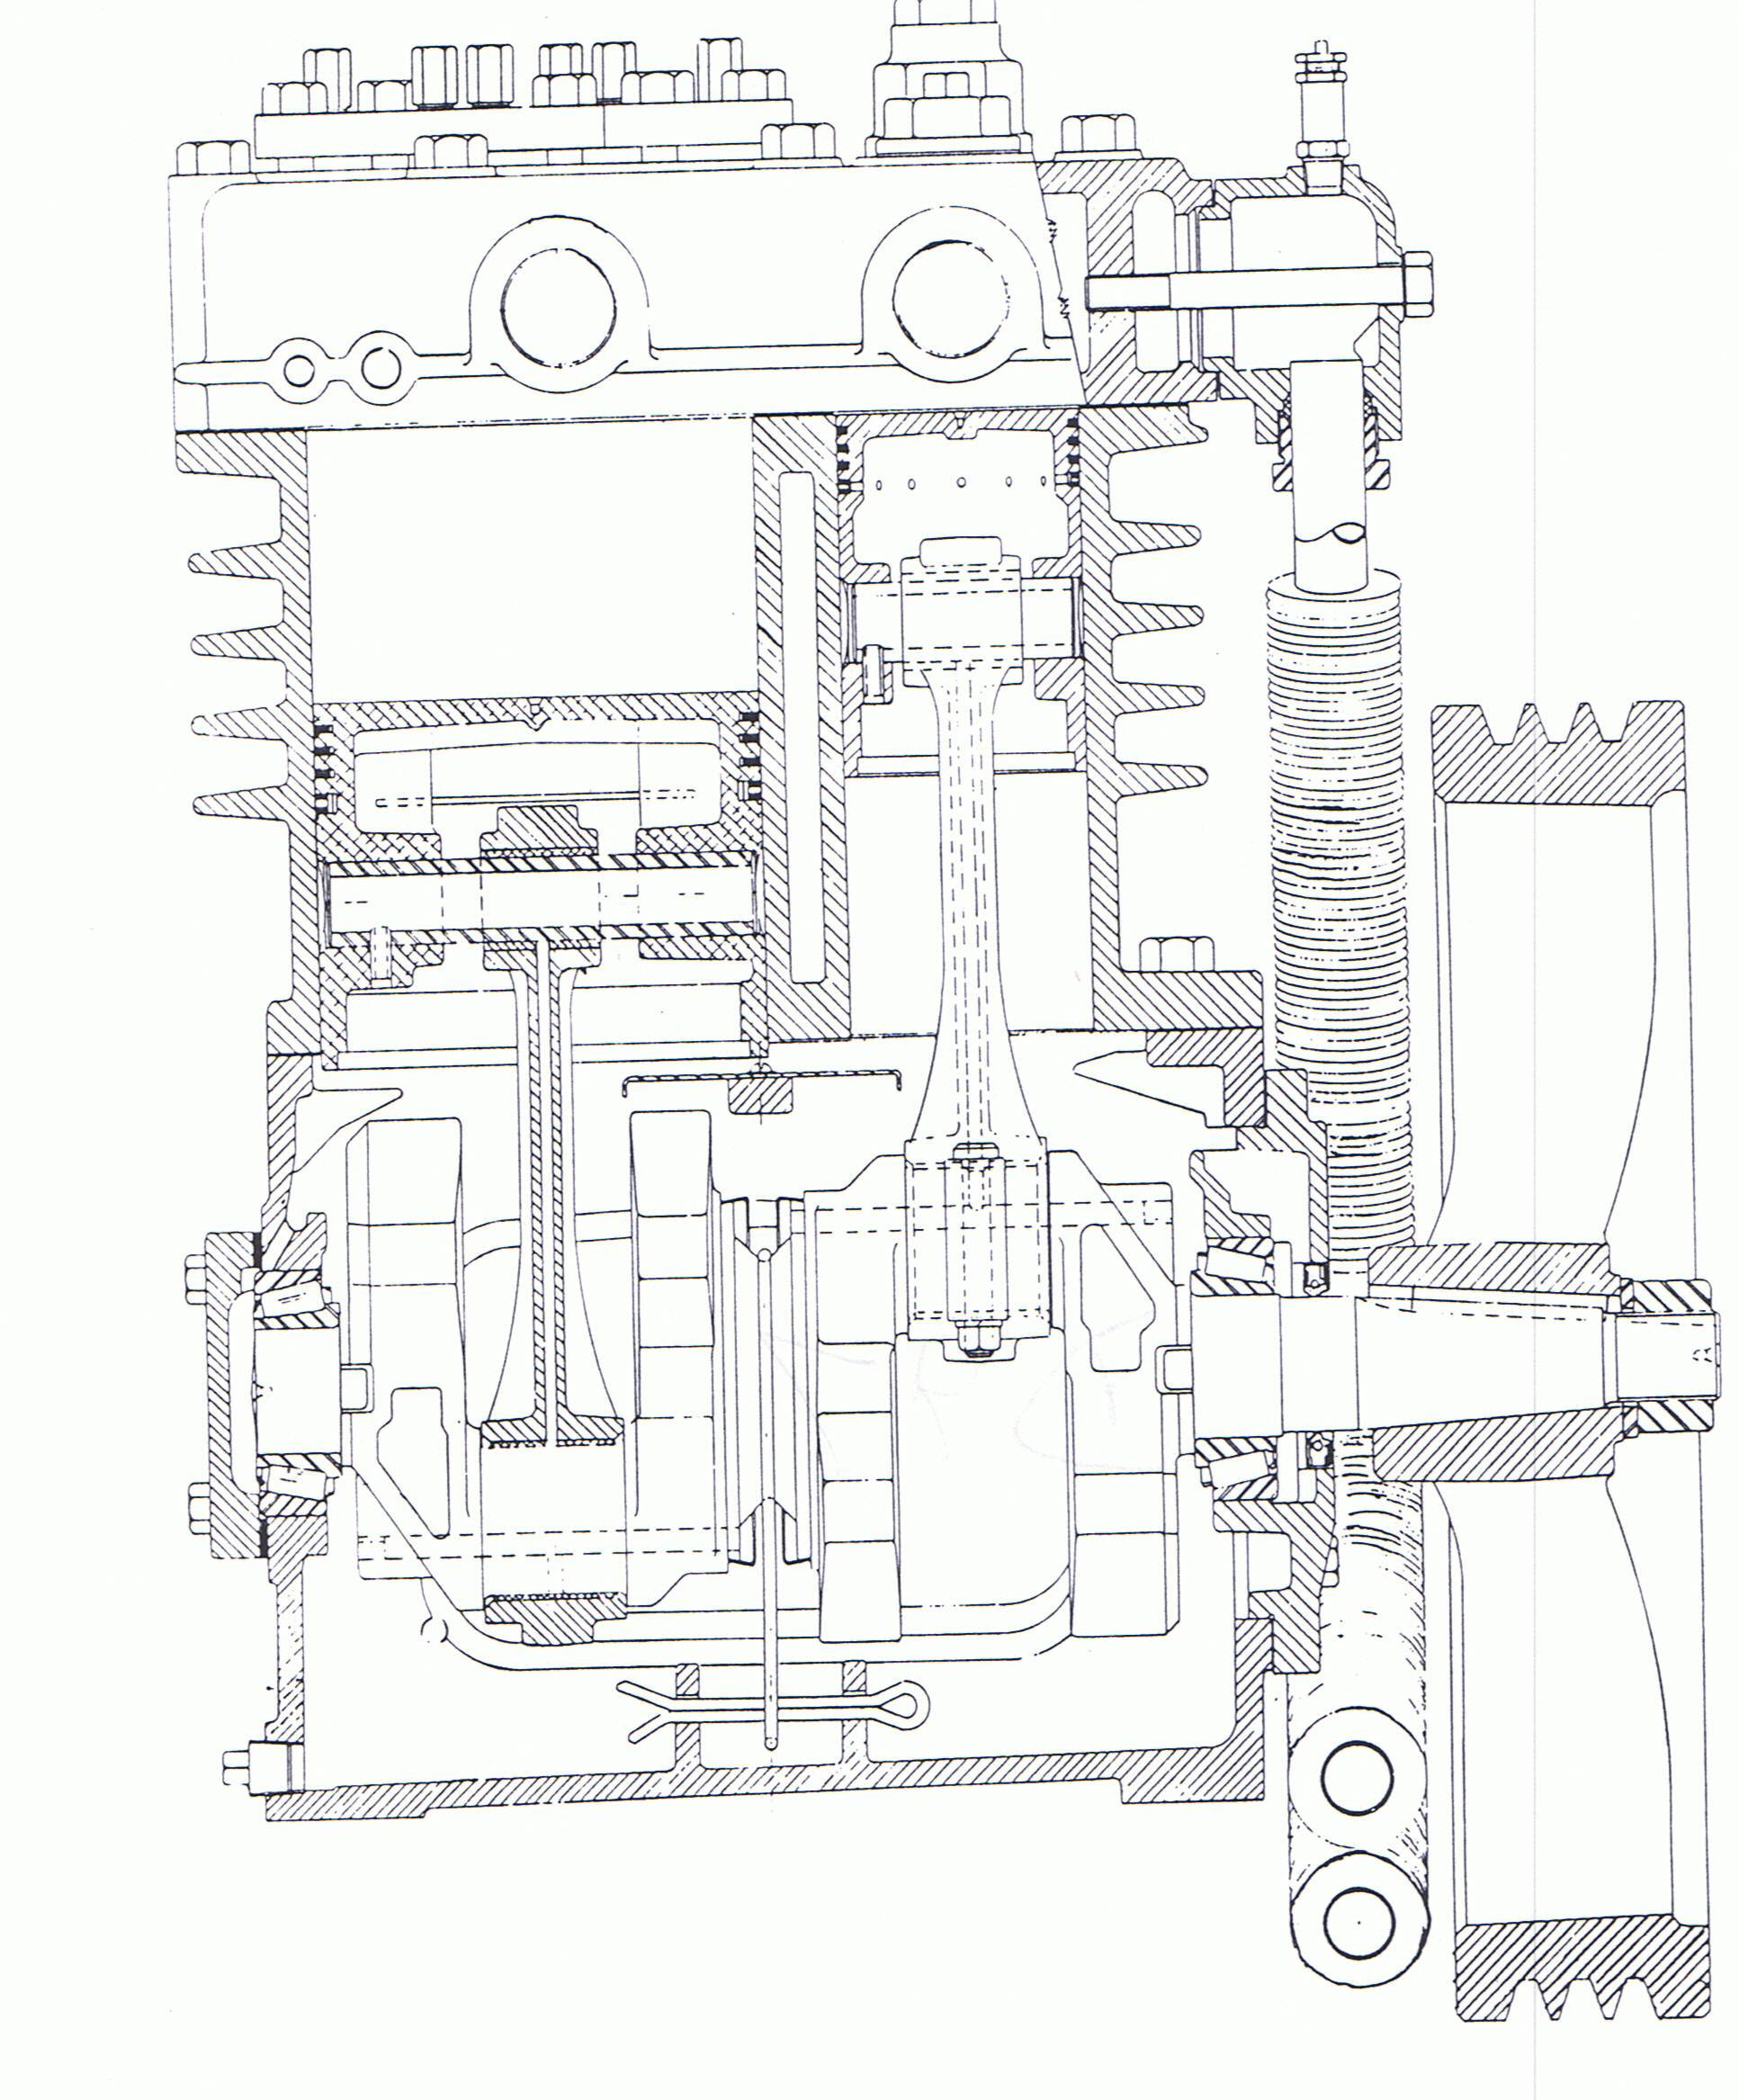 Quincy Compressor Wiring Diagram : Curtis toledo air compressor wiring diagram westinghouse